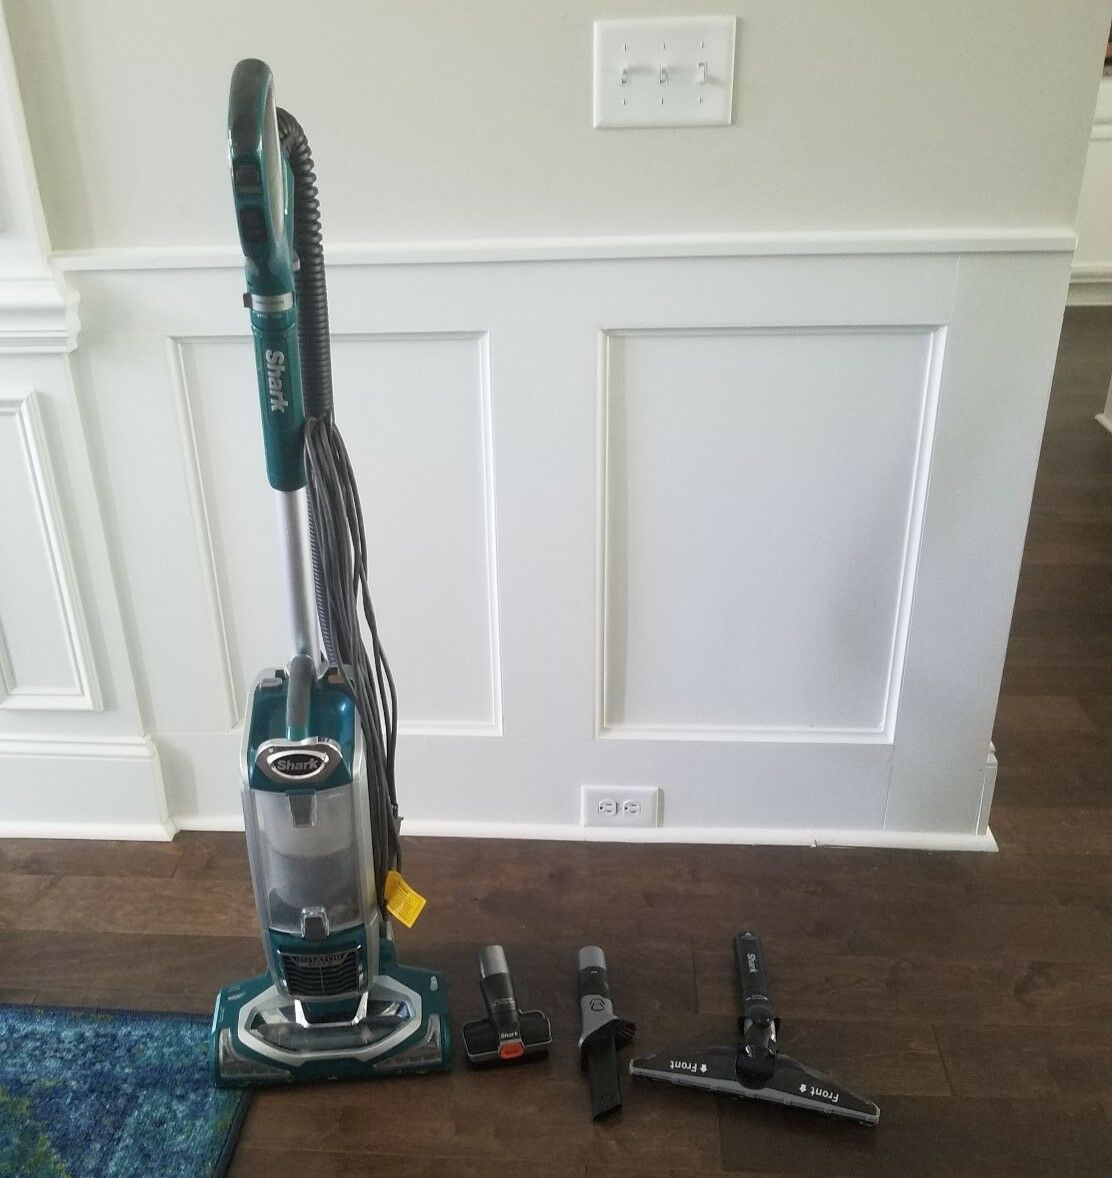 VACUUM Shark redator LIFT MODEL NV681 GREEN, NEW AND LIGHTLY USED WORKS AWESOME